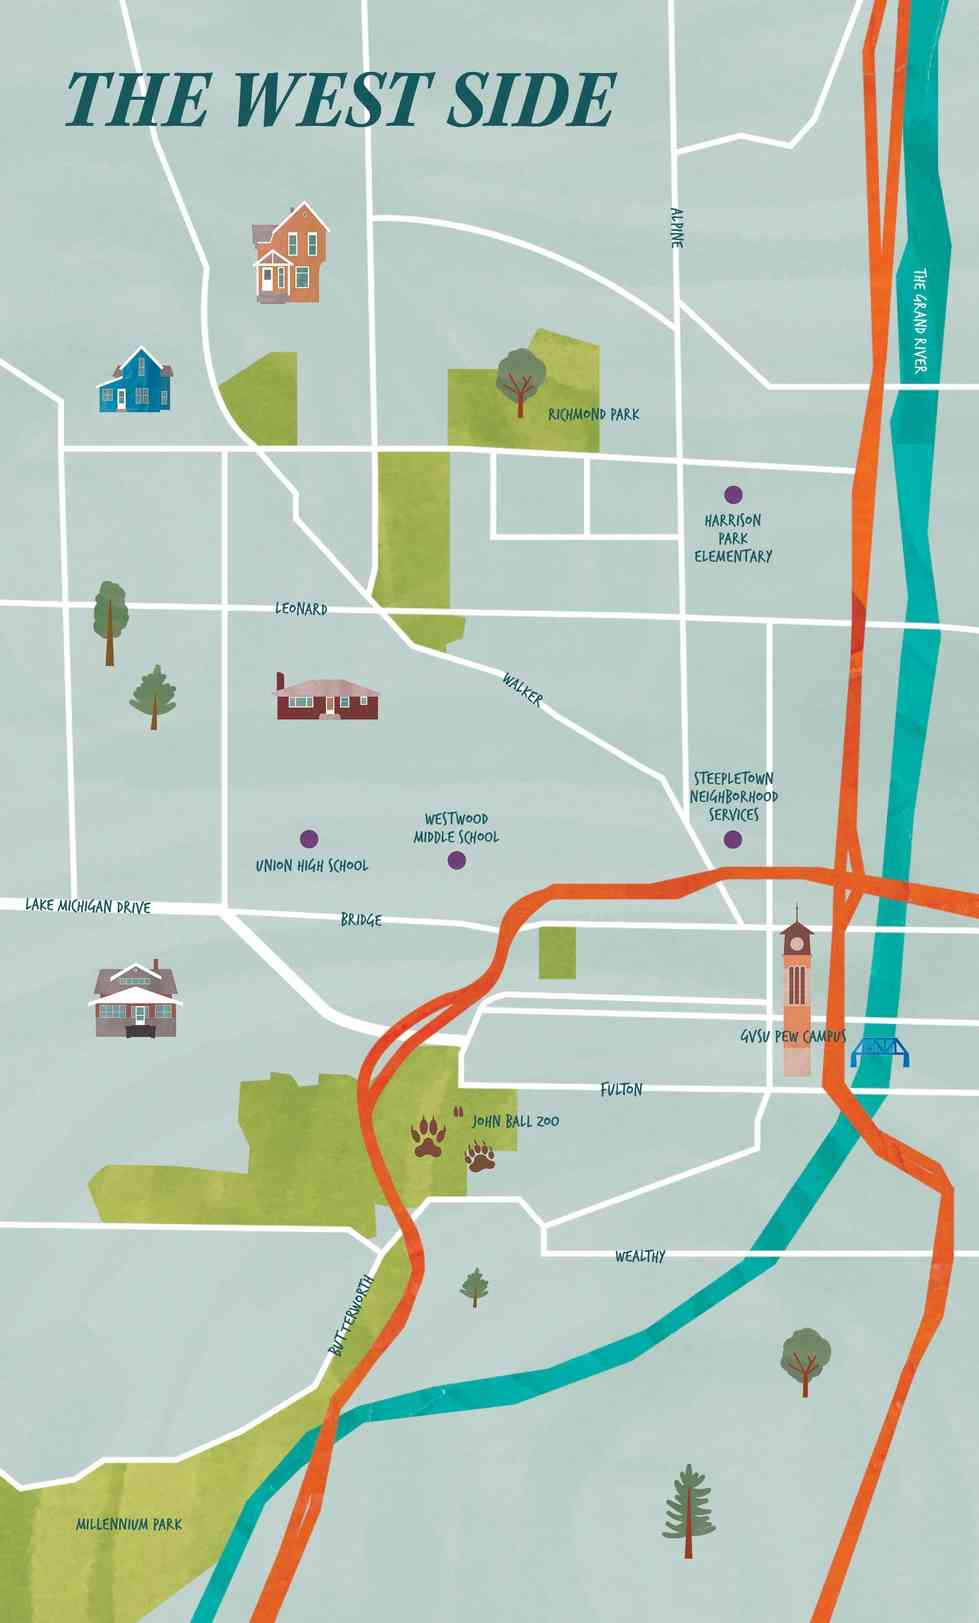 Grand Valley Pew Campus Map.Gvsu Magazine The Westside And Gentrification Grand Rapids